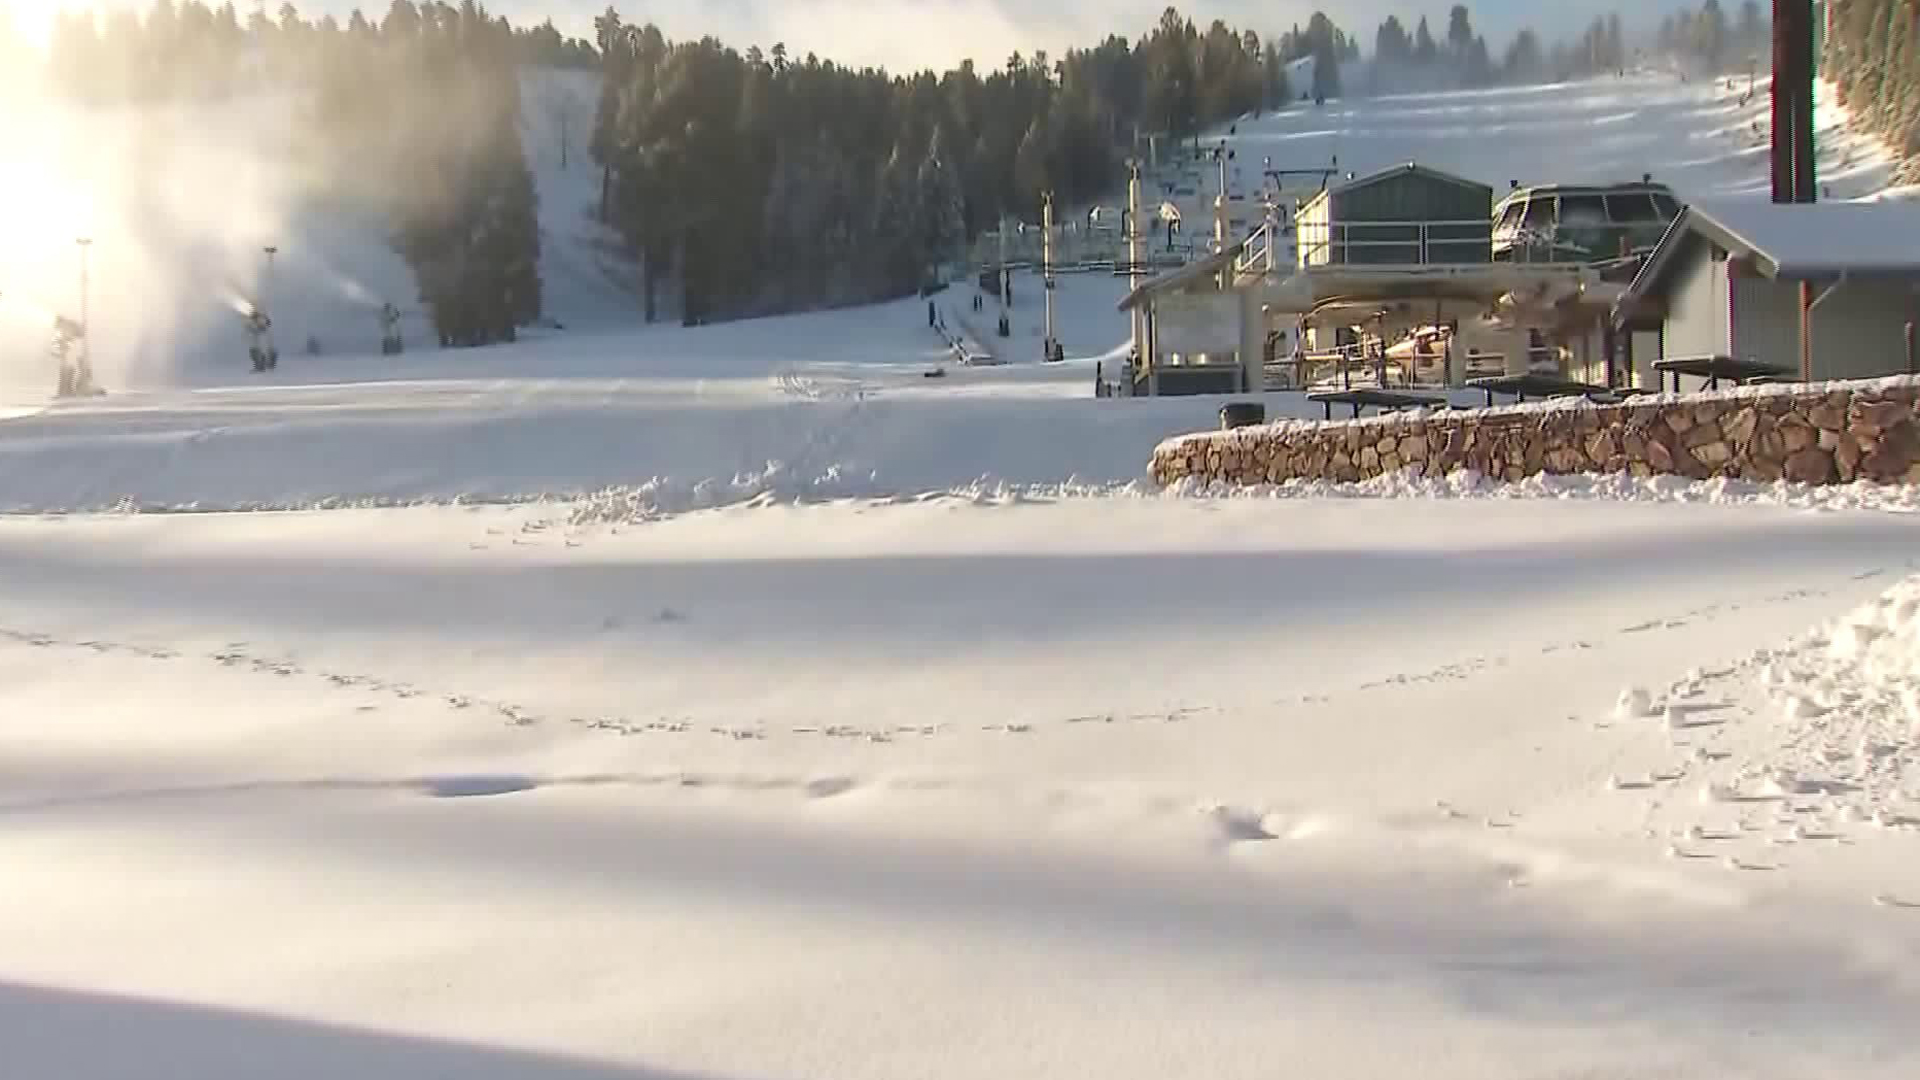 Fresh snow coats the slopes at Snow Summit on Nov. 30, 2018. (Credit: KTLA)